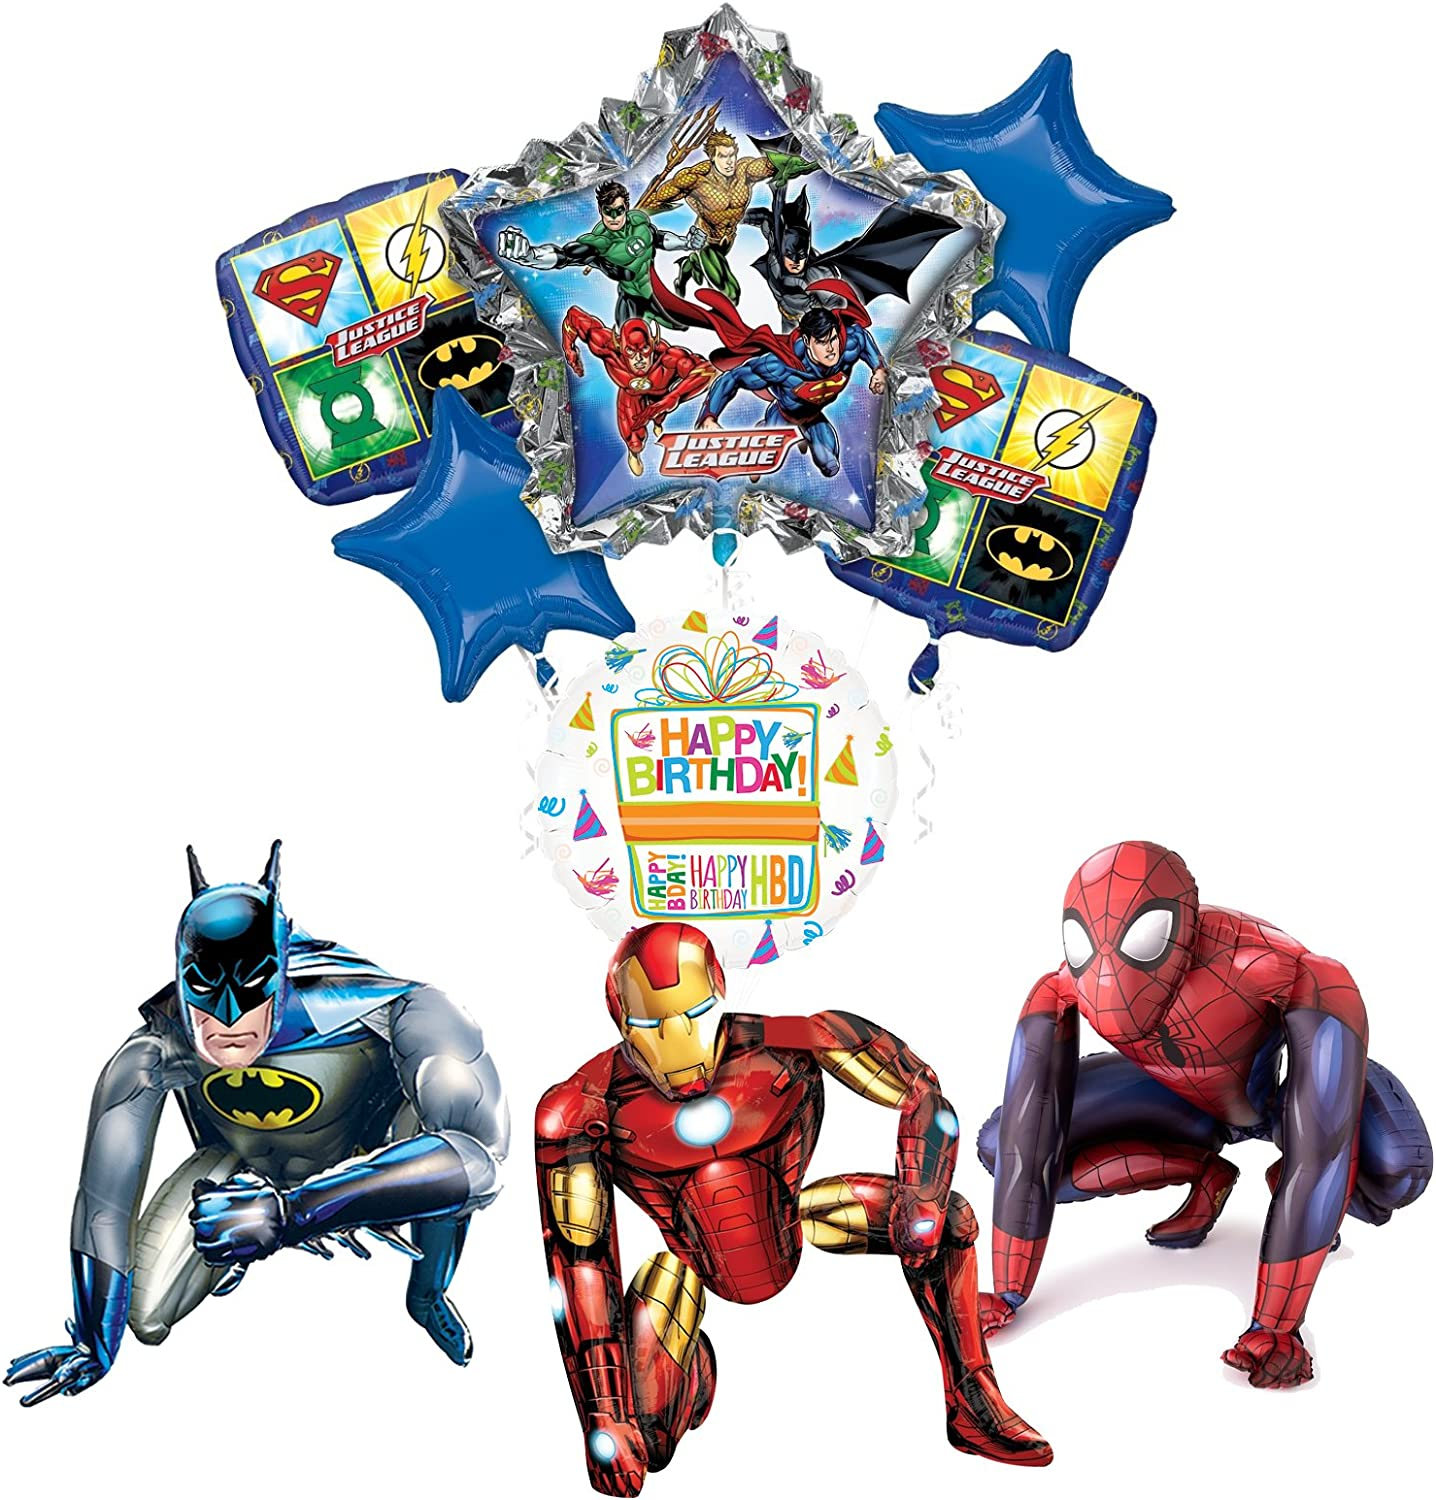 Mayflower Products Justice League Party Supplies Batman, SpiderMan and Iron Man Airwalker Balloon Bouquet Decorations